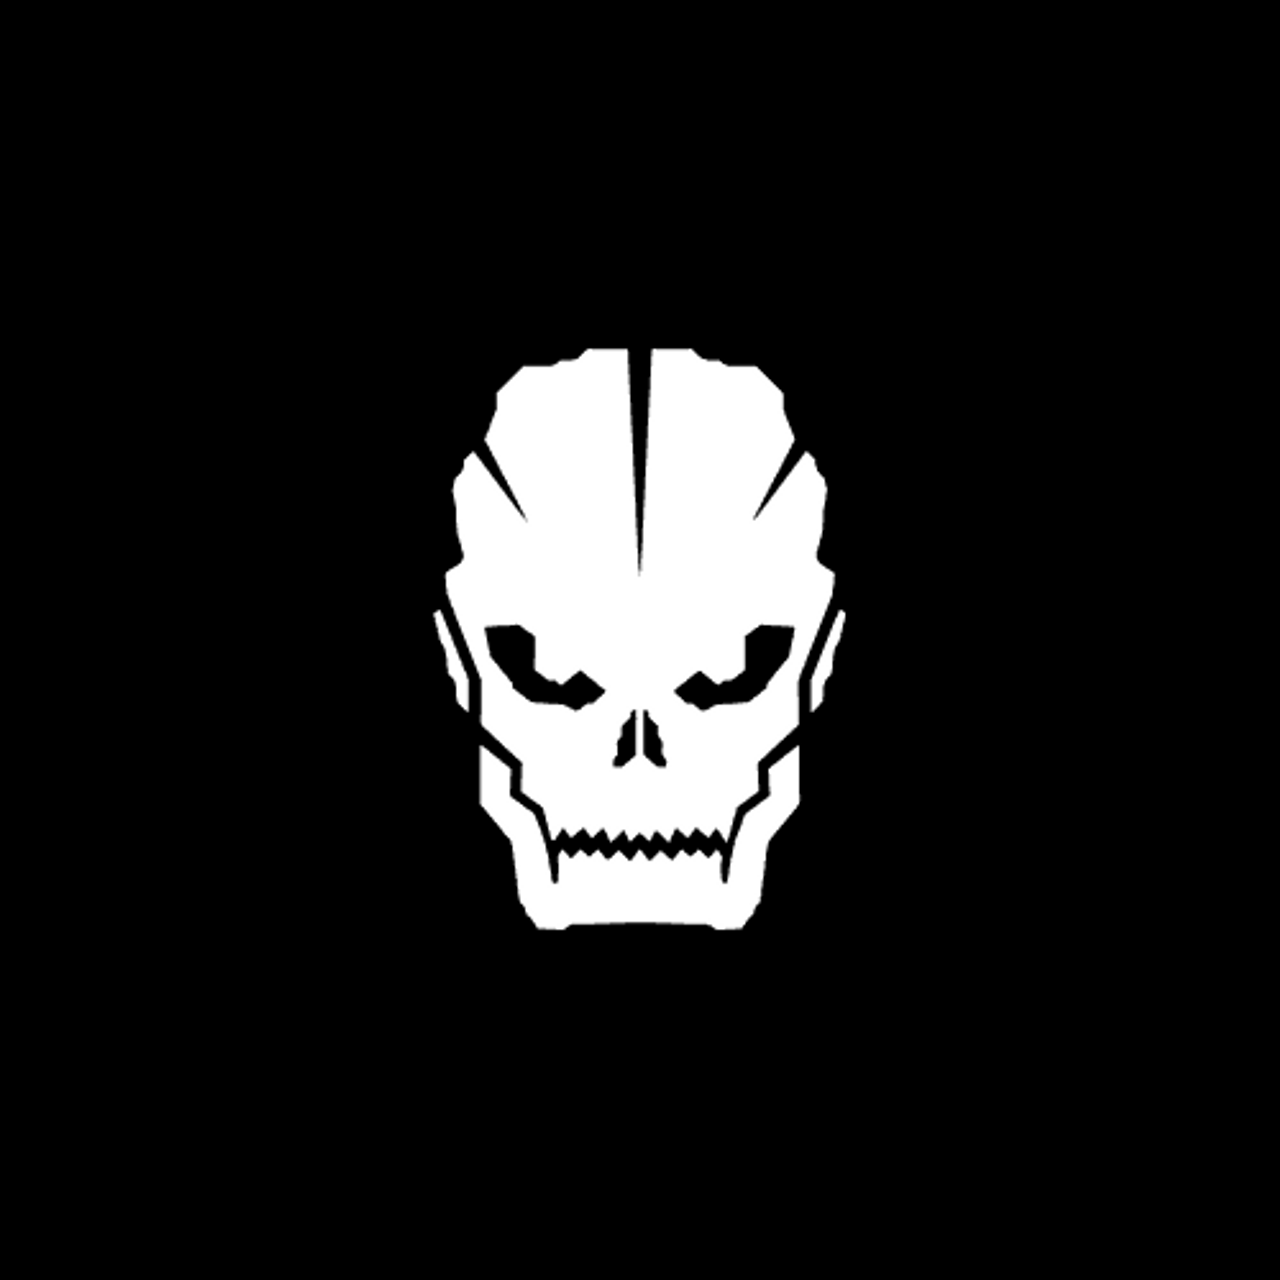 Call Of Duty Black Ops 3 Skull Logo Decal